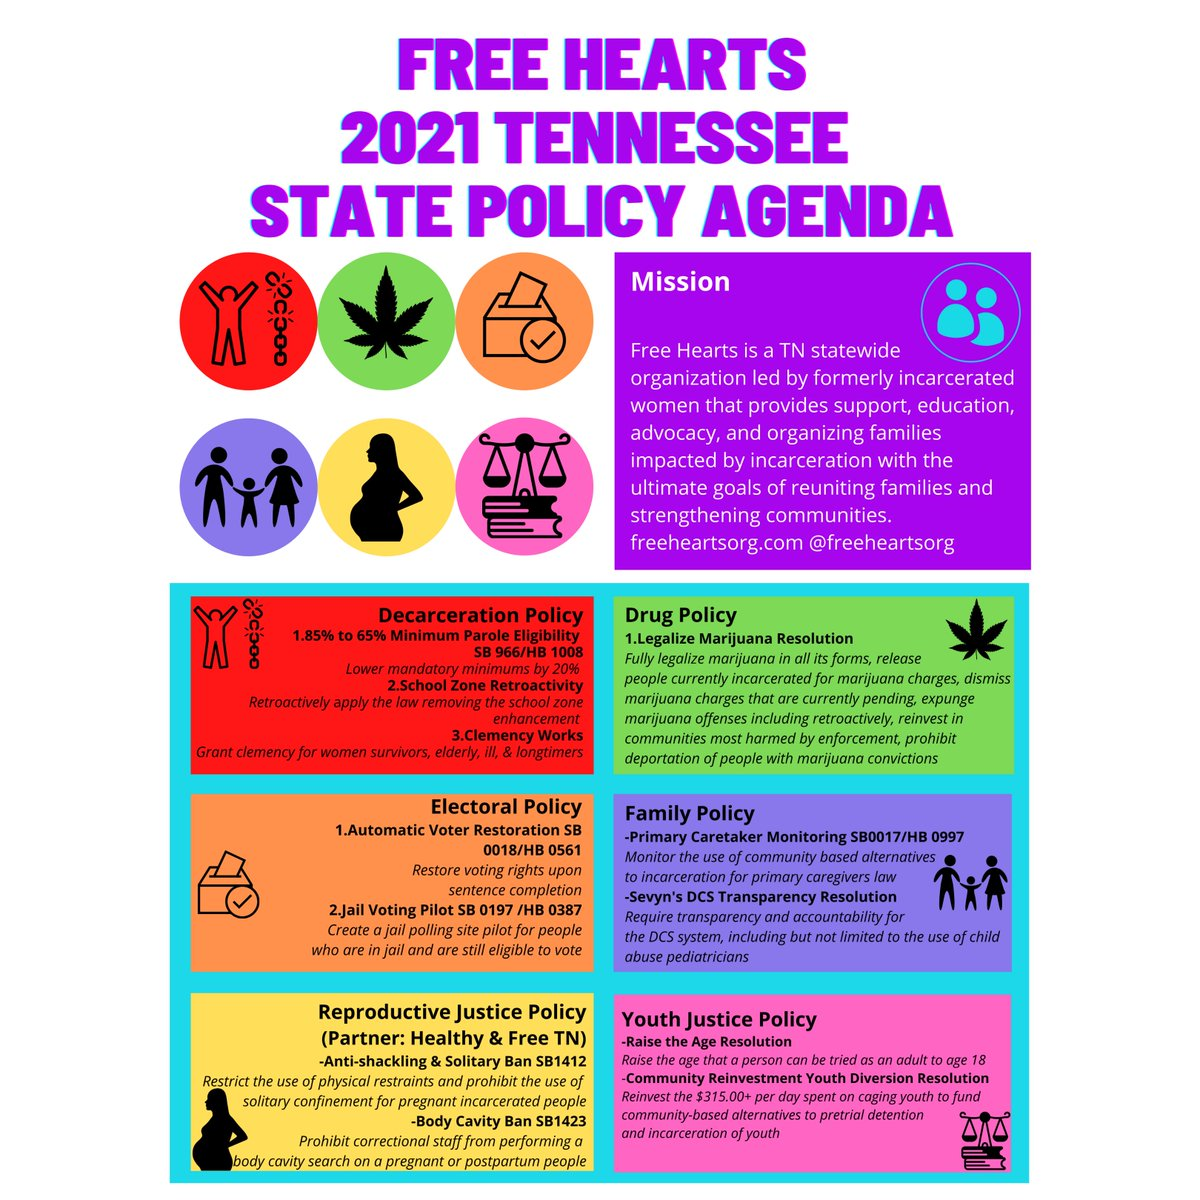 .@freeheartsorg has announced their 2021 TN State Policy Agenda! Check it out below. TN community – find your representatives to ask them to support and oppose these efforts here: bit.ly/mytnlegislator